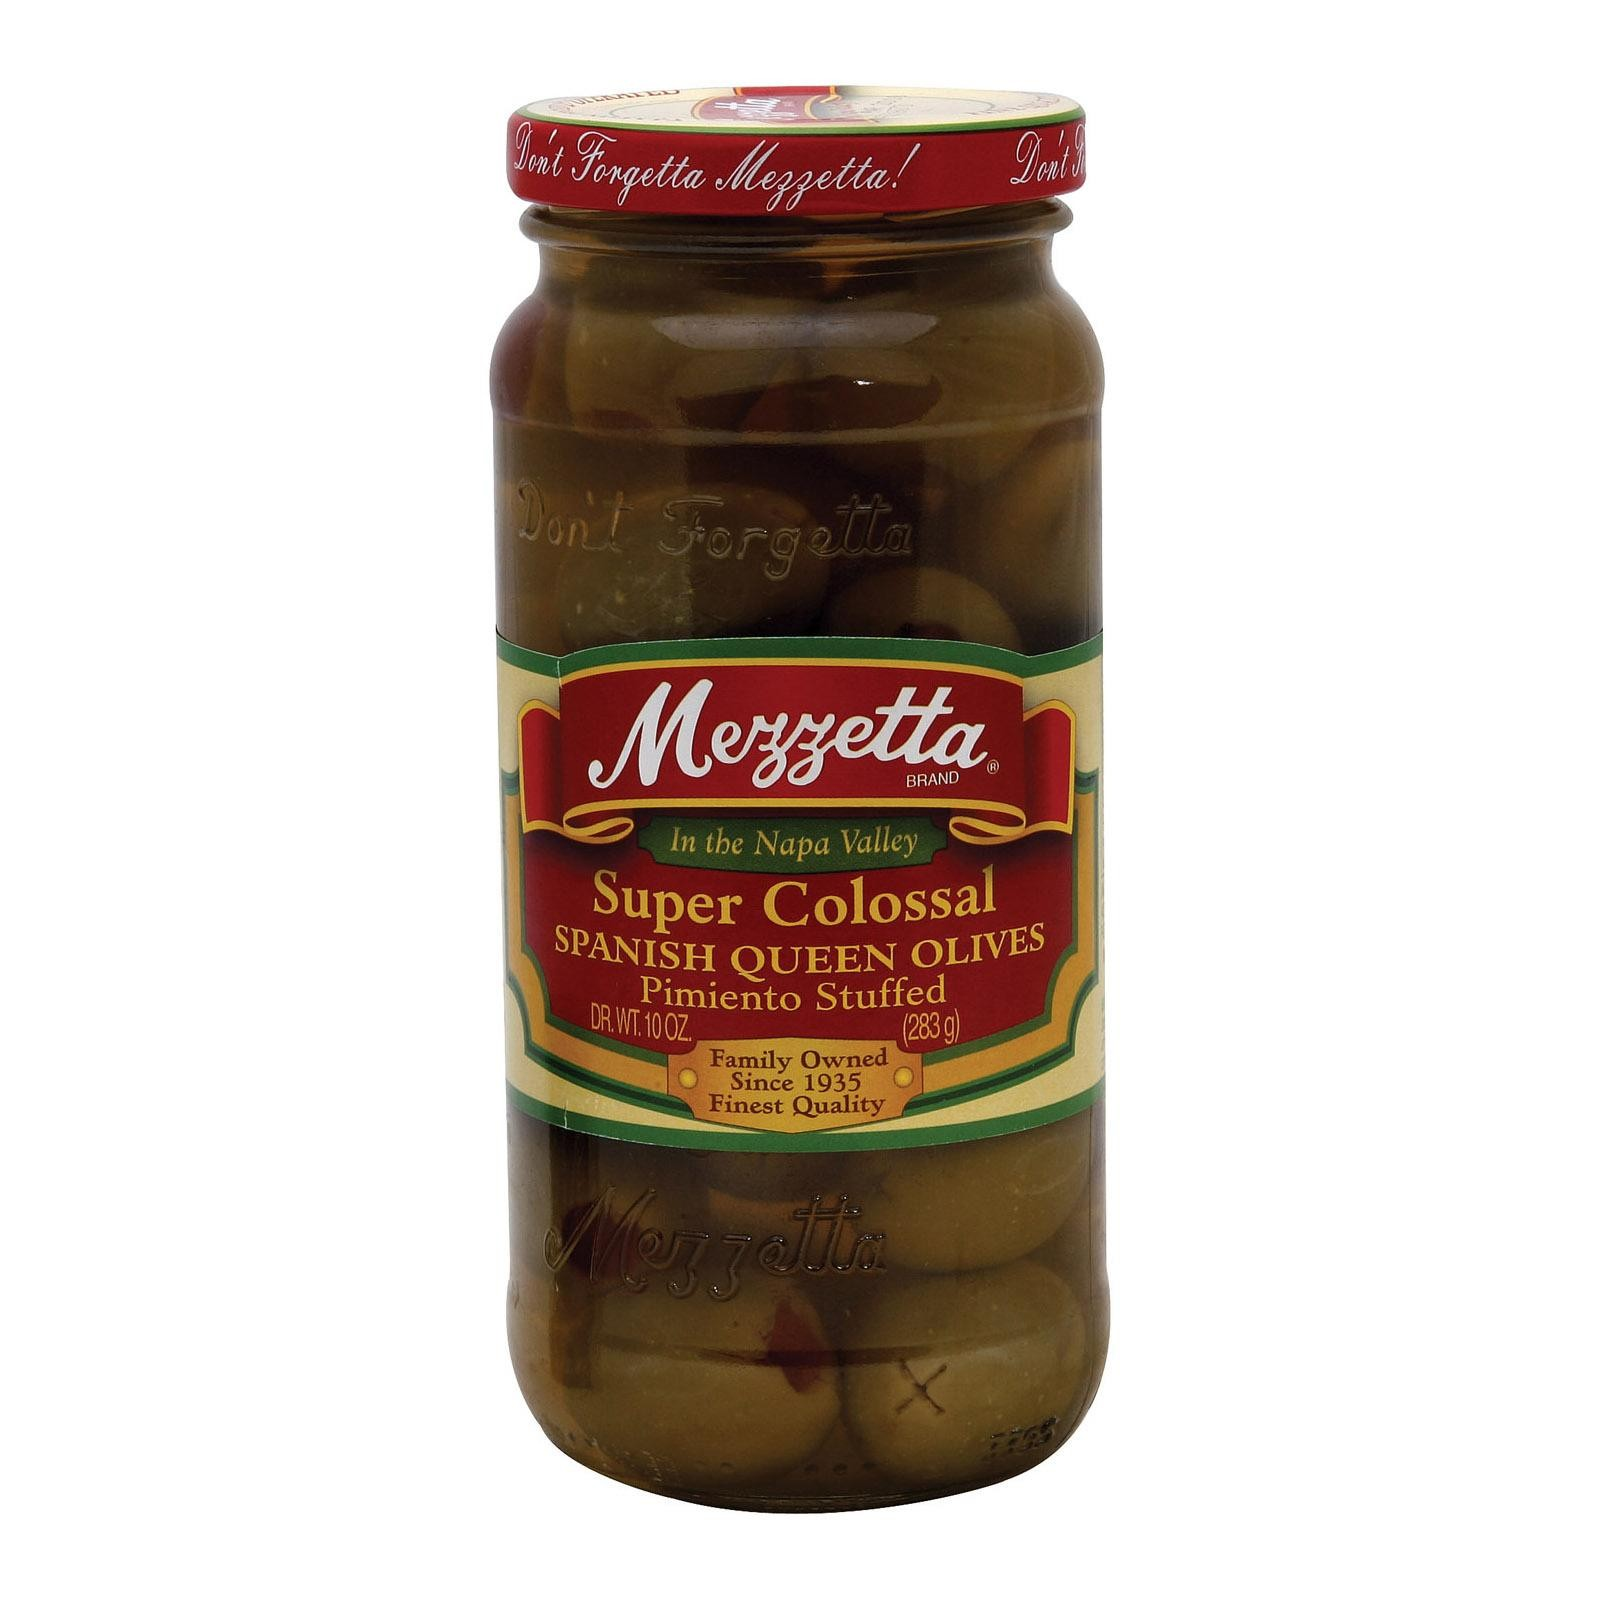 Mezzetta Super Colossal Pimiento Stuffed Spanish Queen Olives - Pack of 6 - 10 Oz.